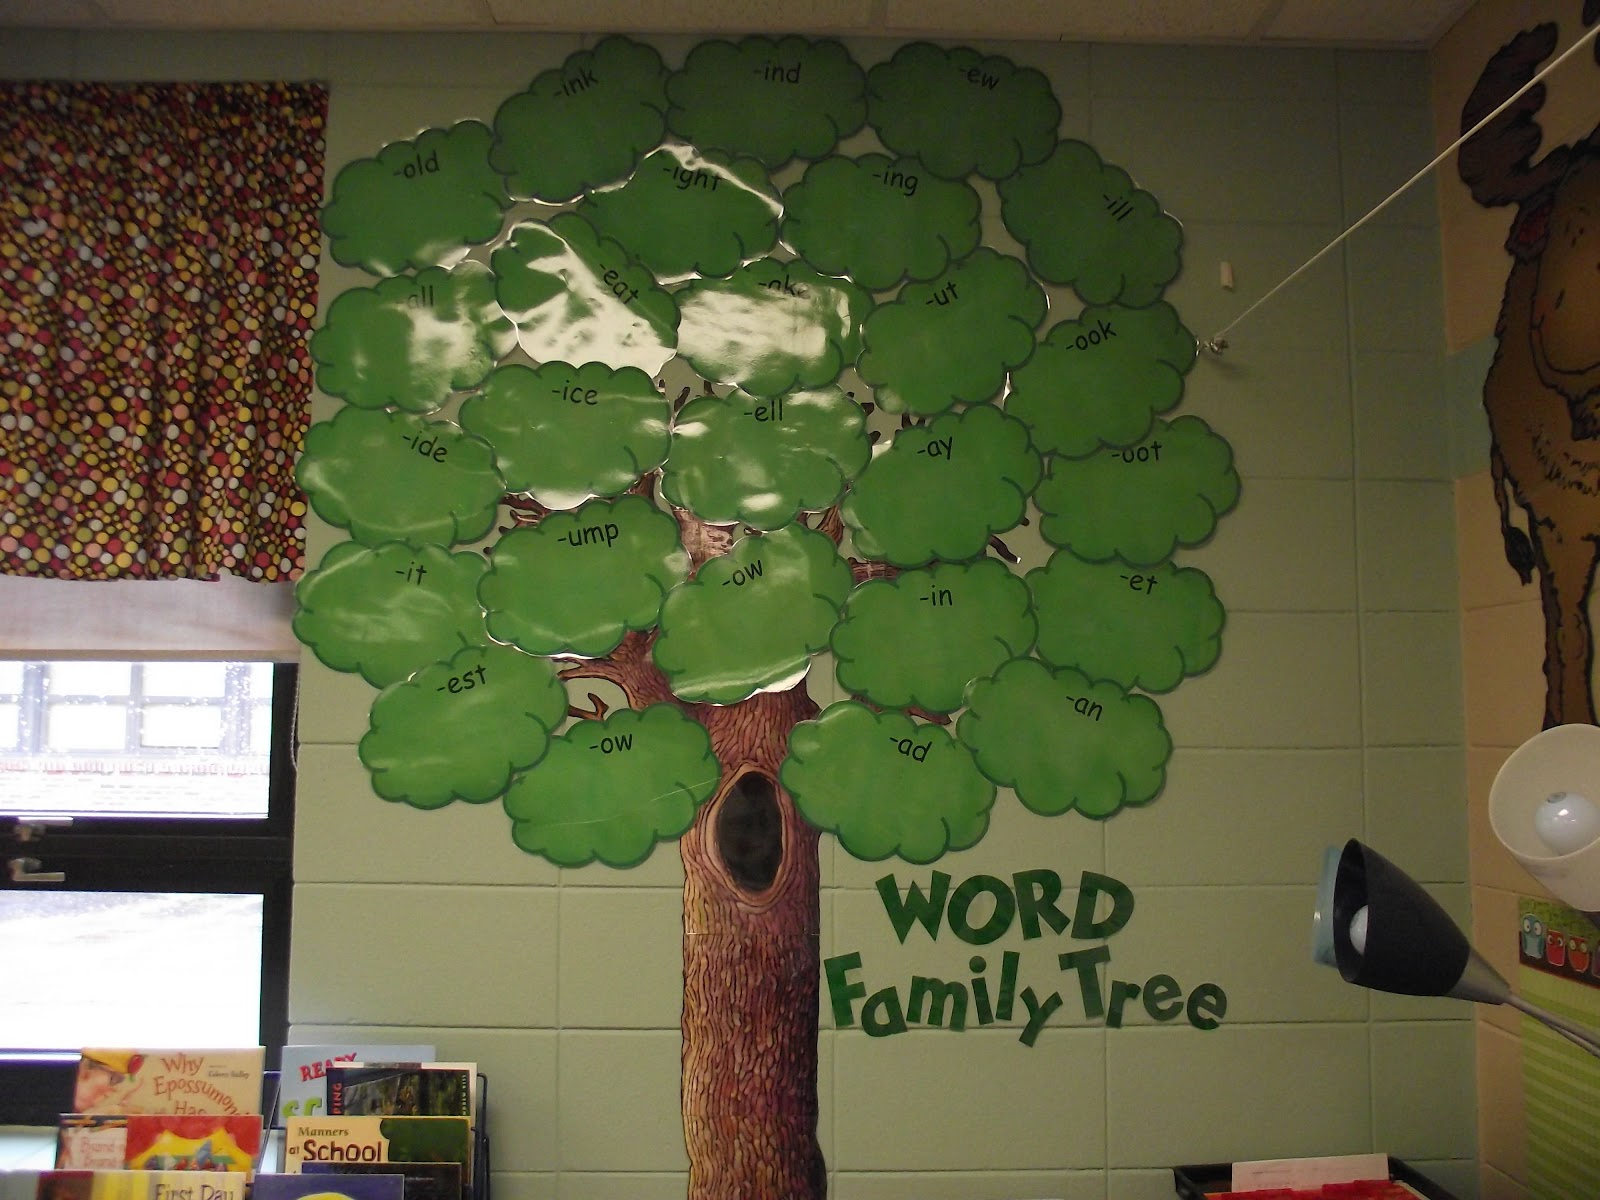 First Grade O.W.L.s: WORD Family Tree